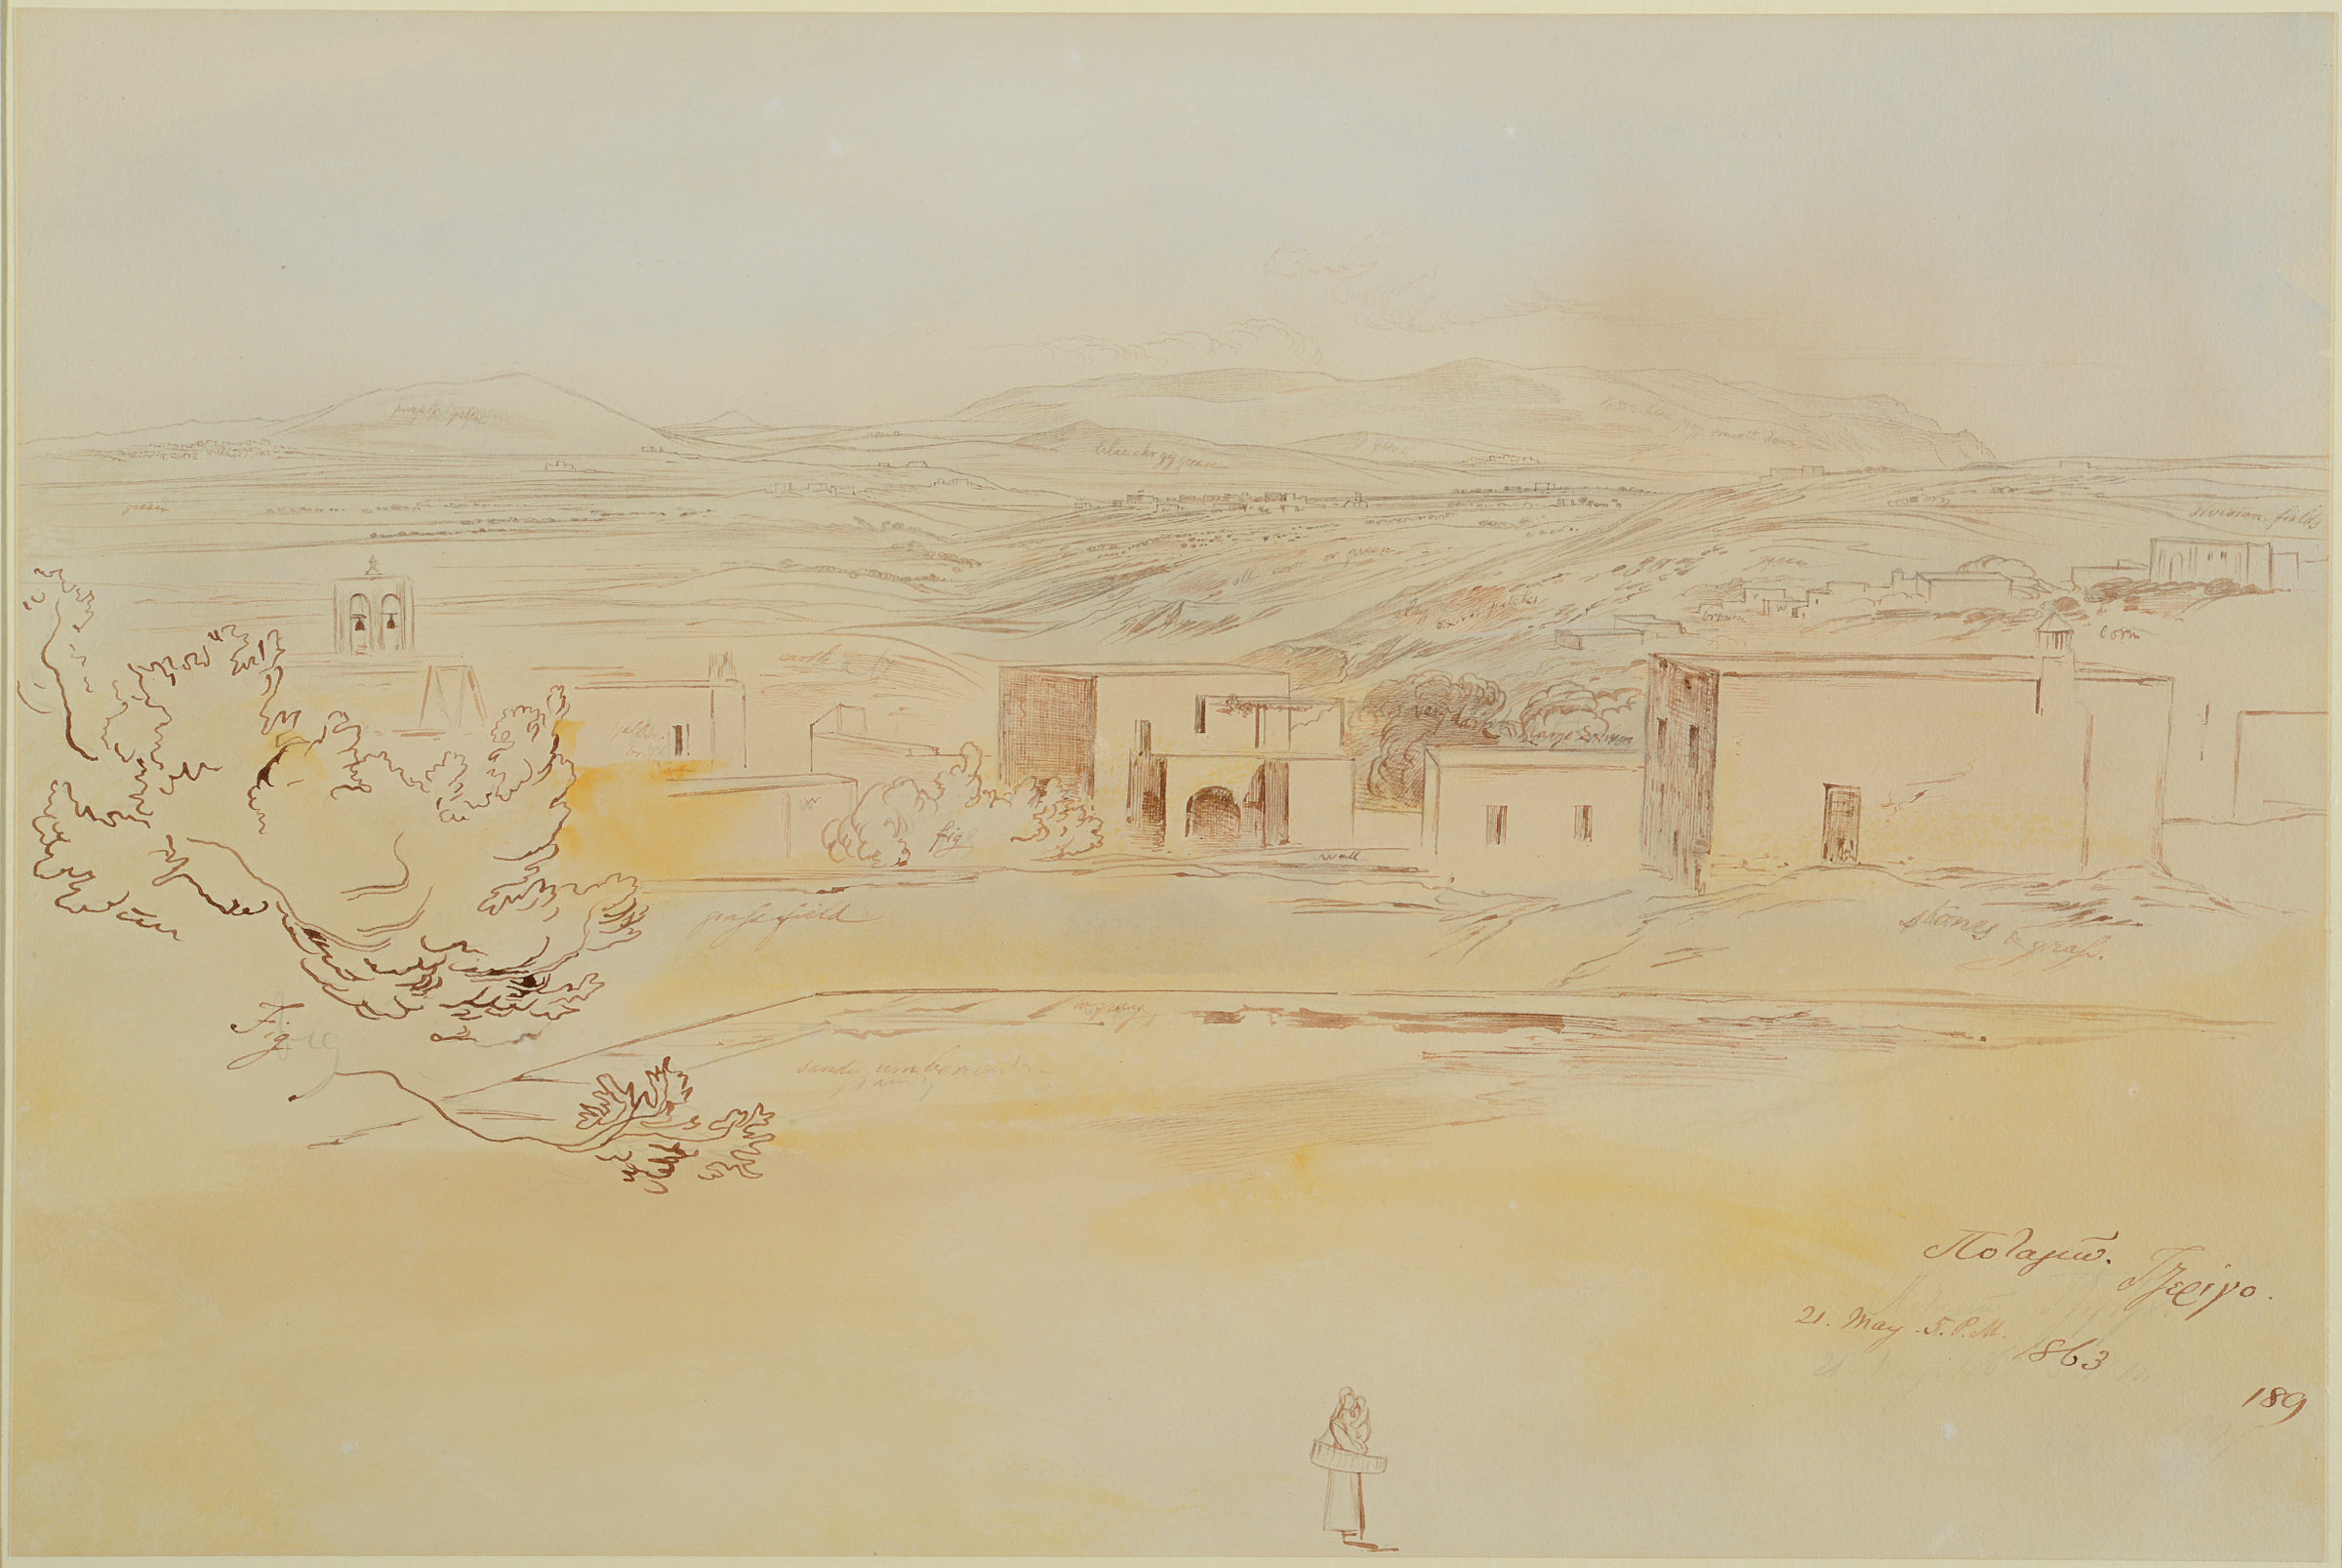 Lot 2094 - EDWARD LEAR (1812-1888) POTAMOS (KYTHIRA) Inscribed (in ink over pencil) in Greek, dated 21. May.